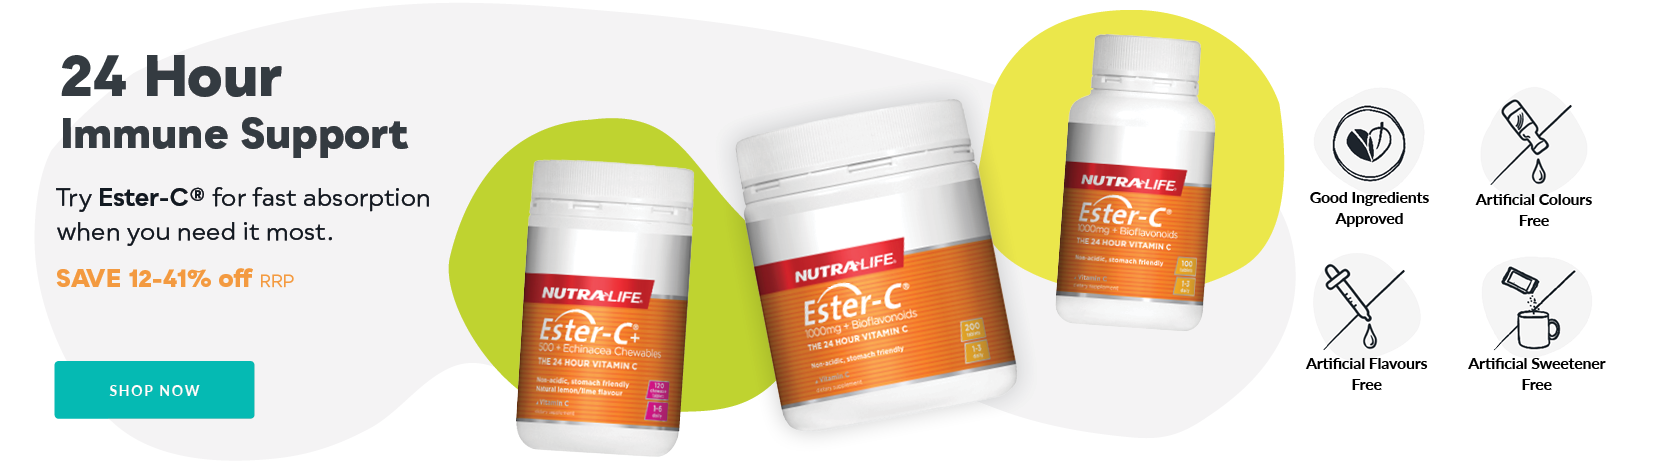 Nutra-Life Immune Support Sale - Save 12-41% off RRP